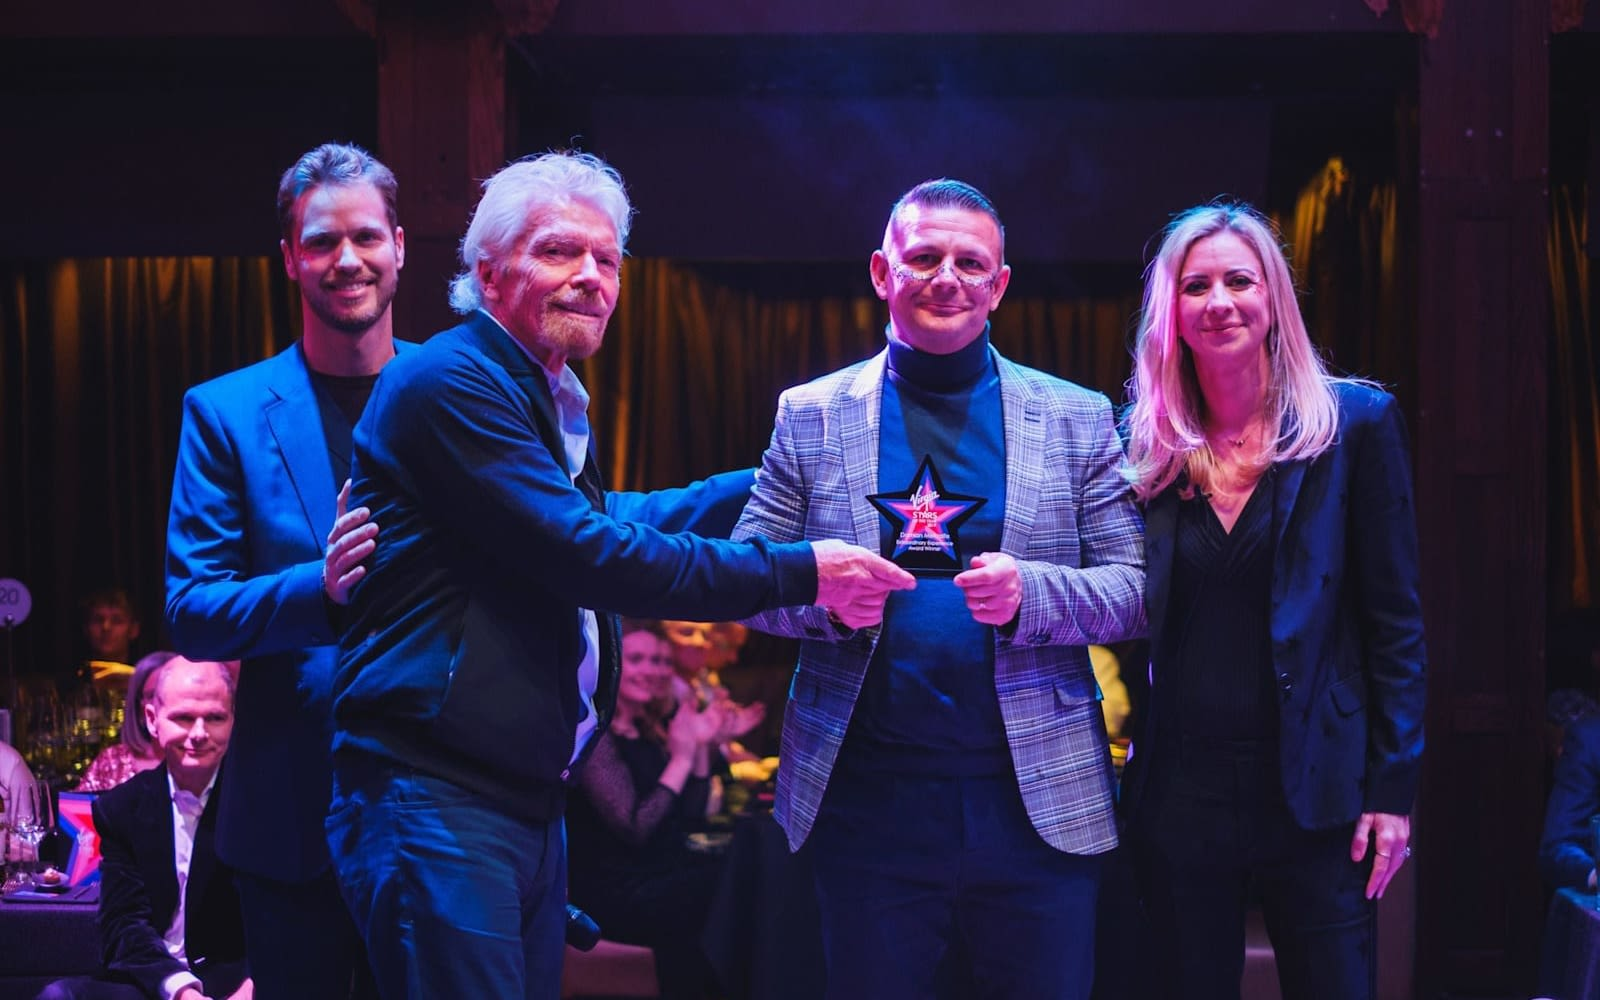 Richard, Sam and Holly Branson on stage presenting an award to Damien Metcalfe